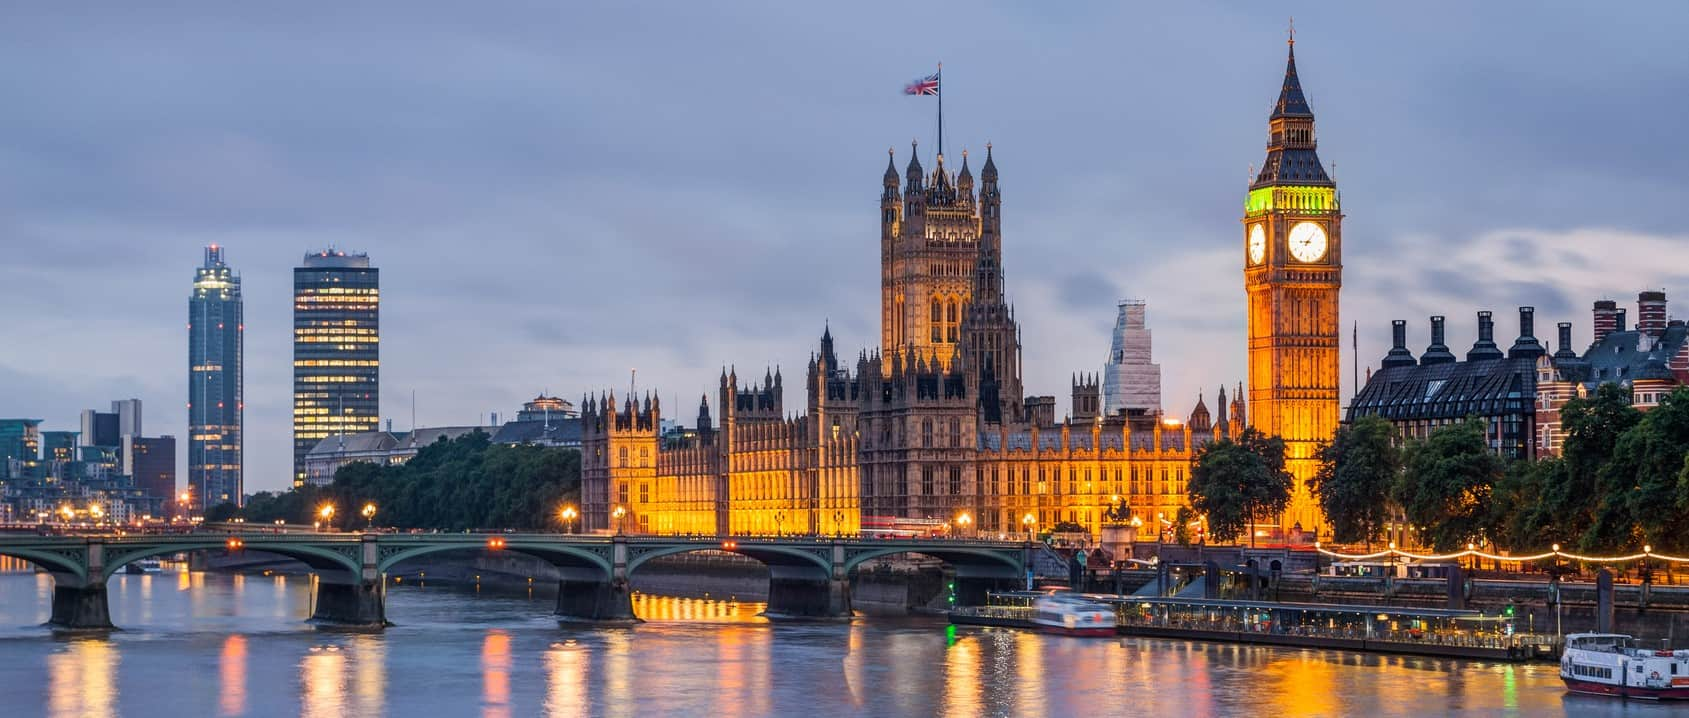 Big Ben and Westminster Bridge at dusk, London, UK